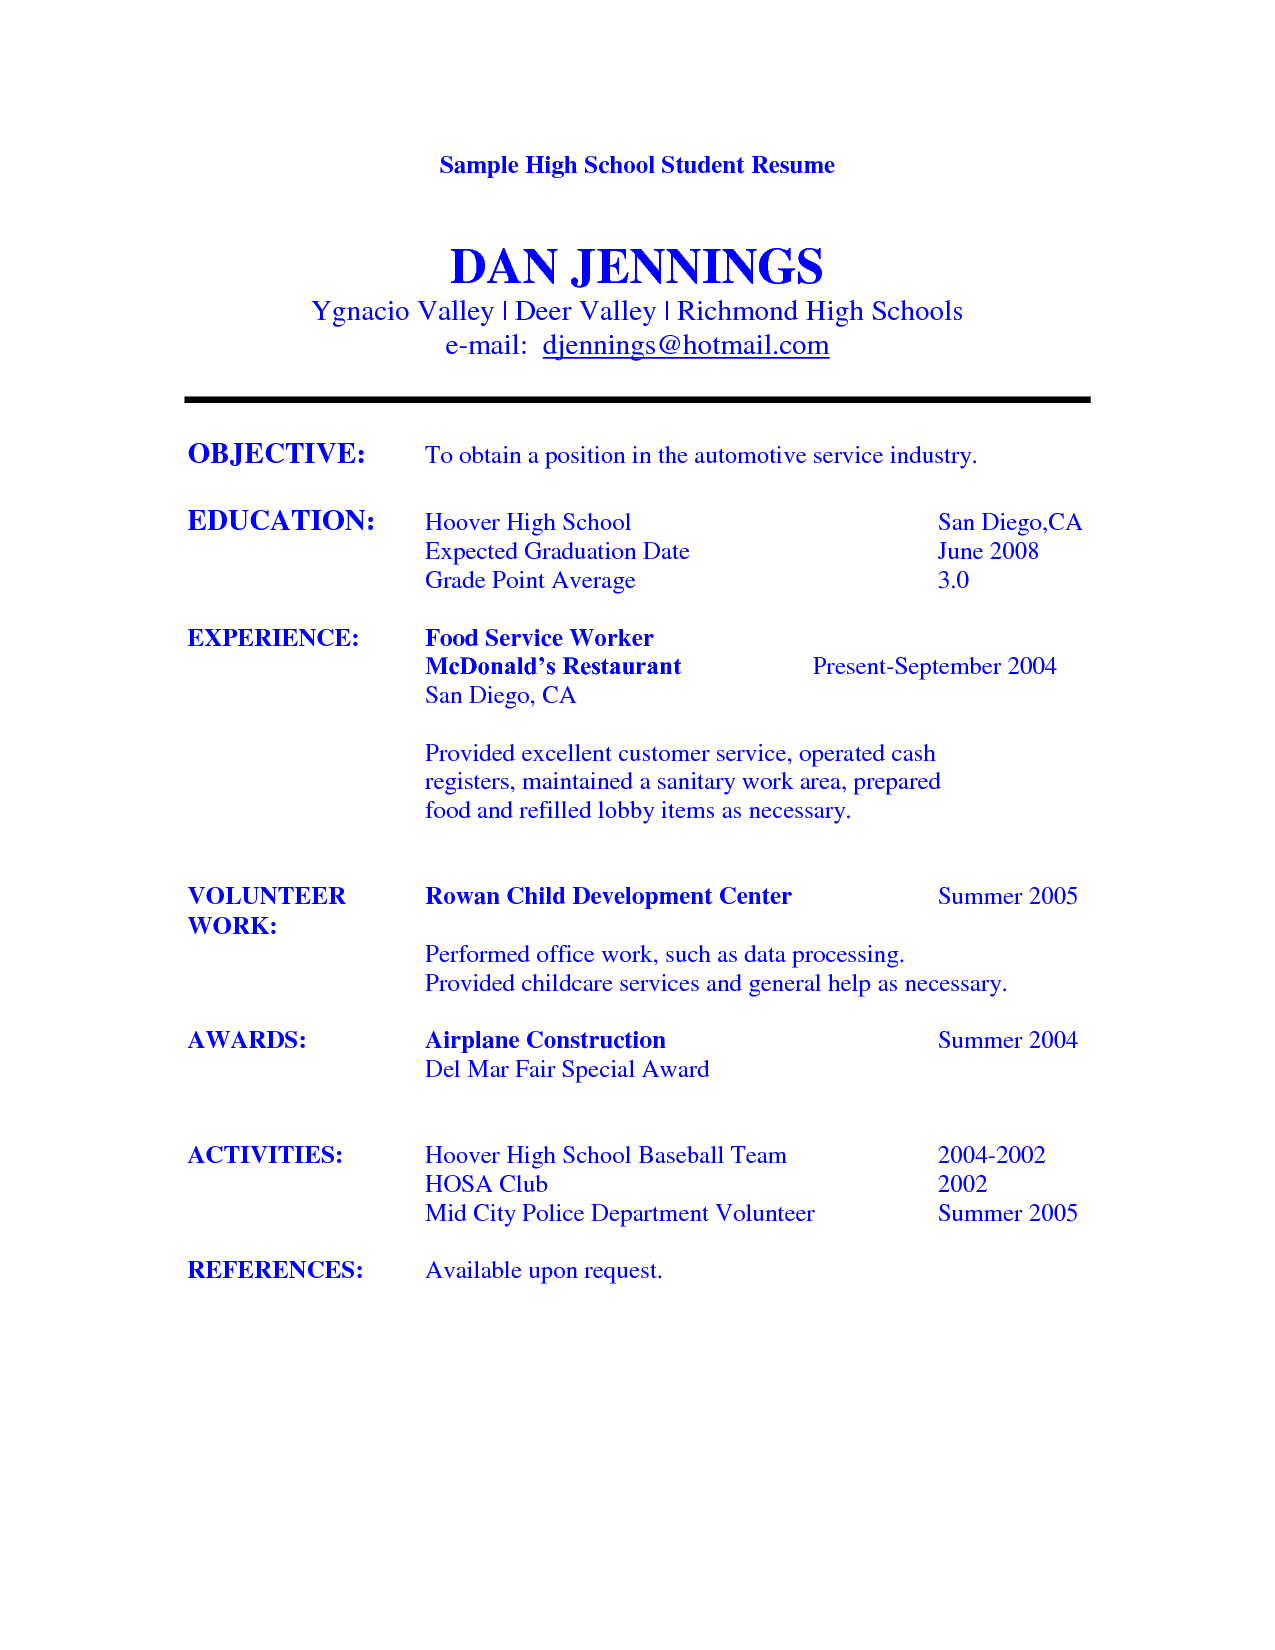 Resume Templates For High School Students Resume Example For High School Student Sample Resumes  Httpwww